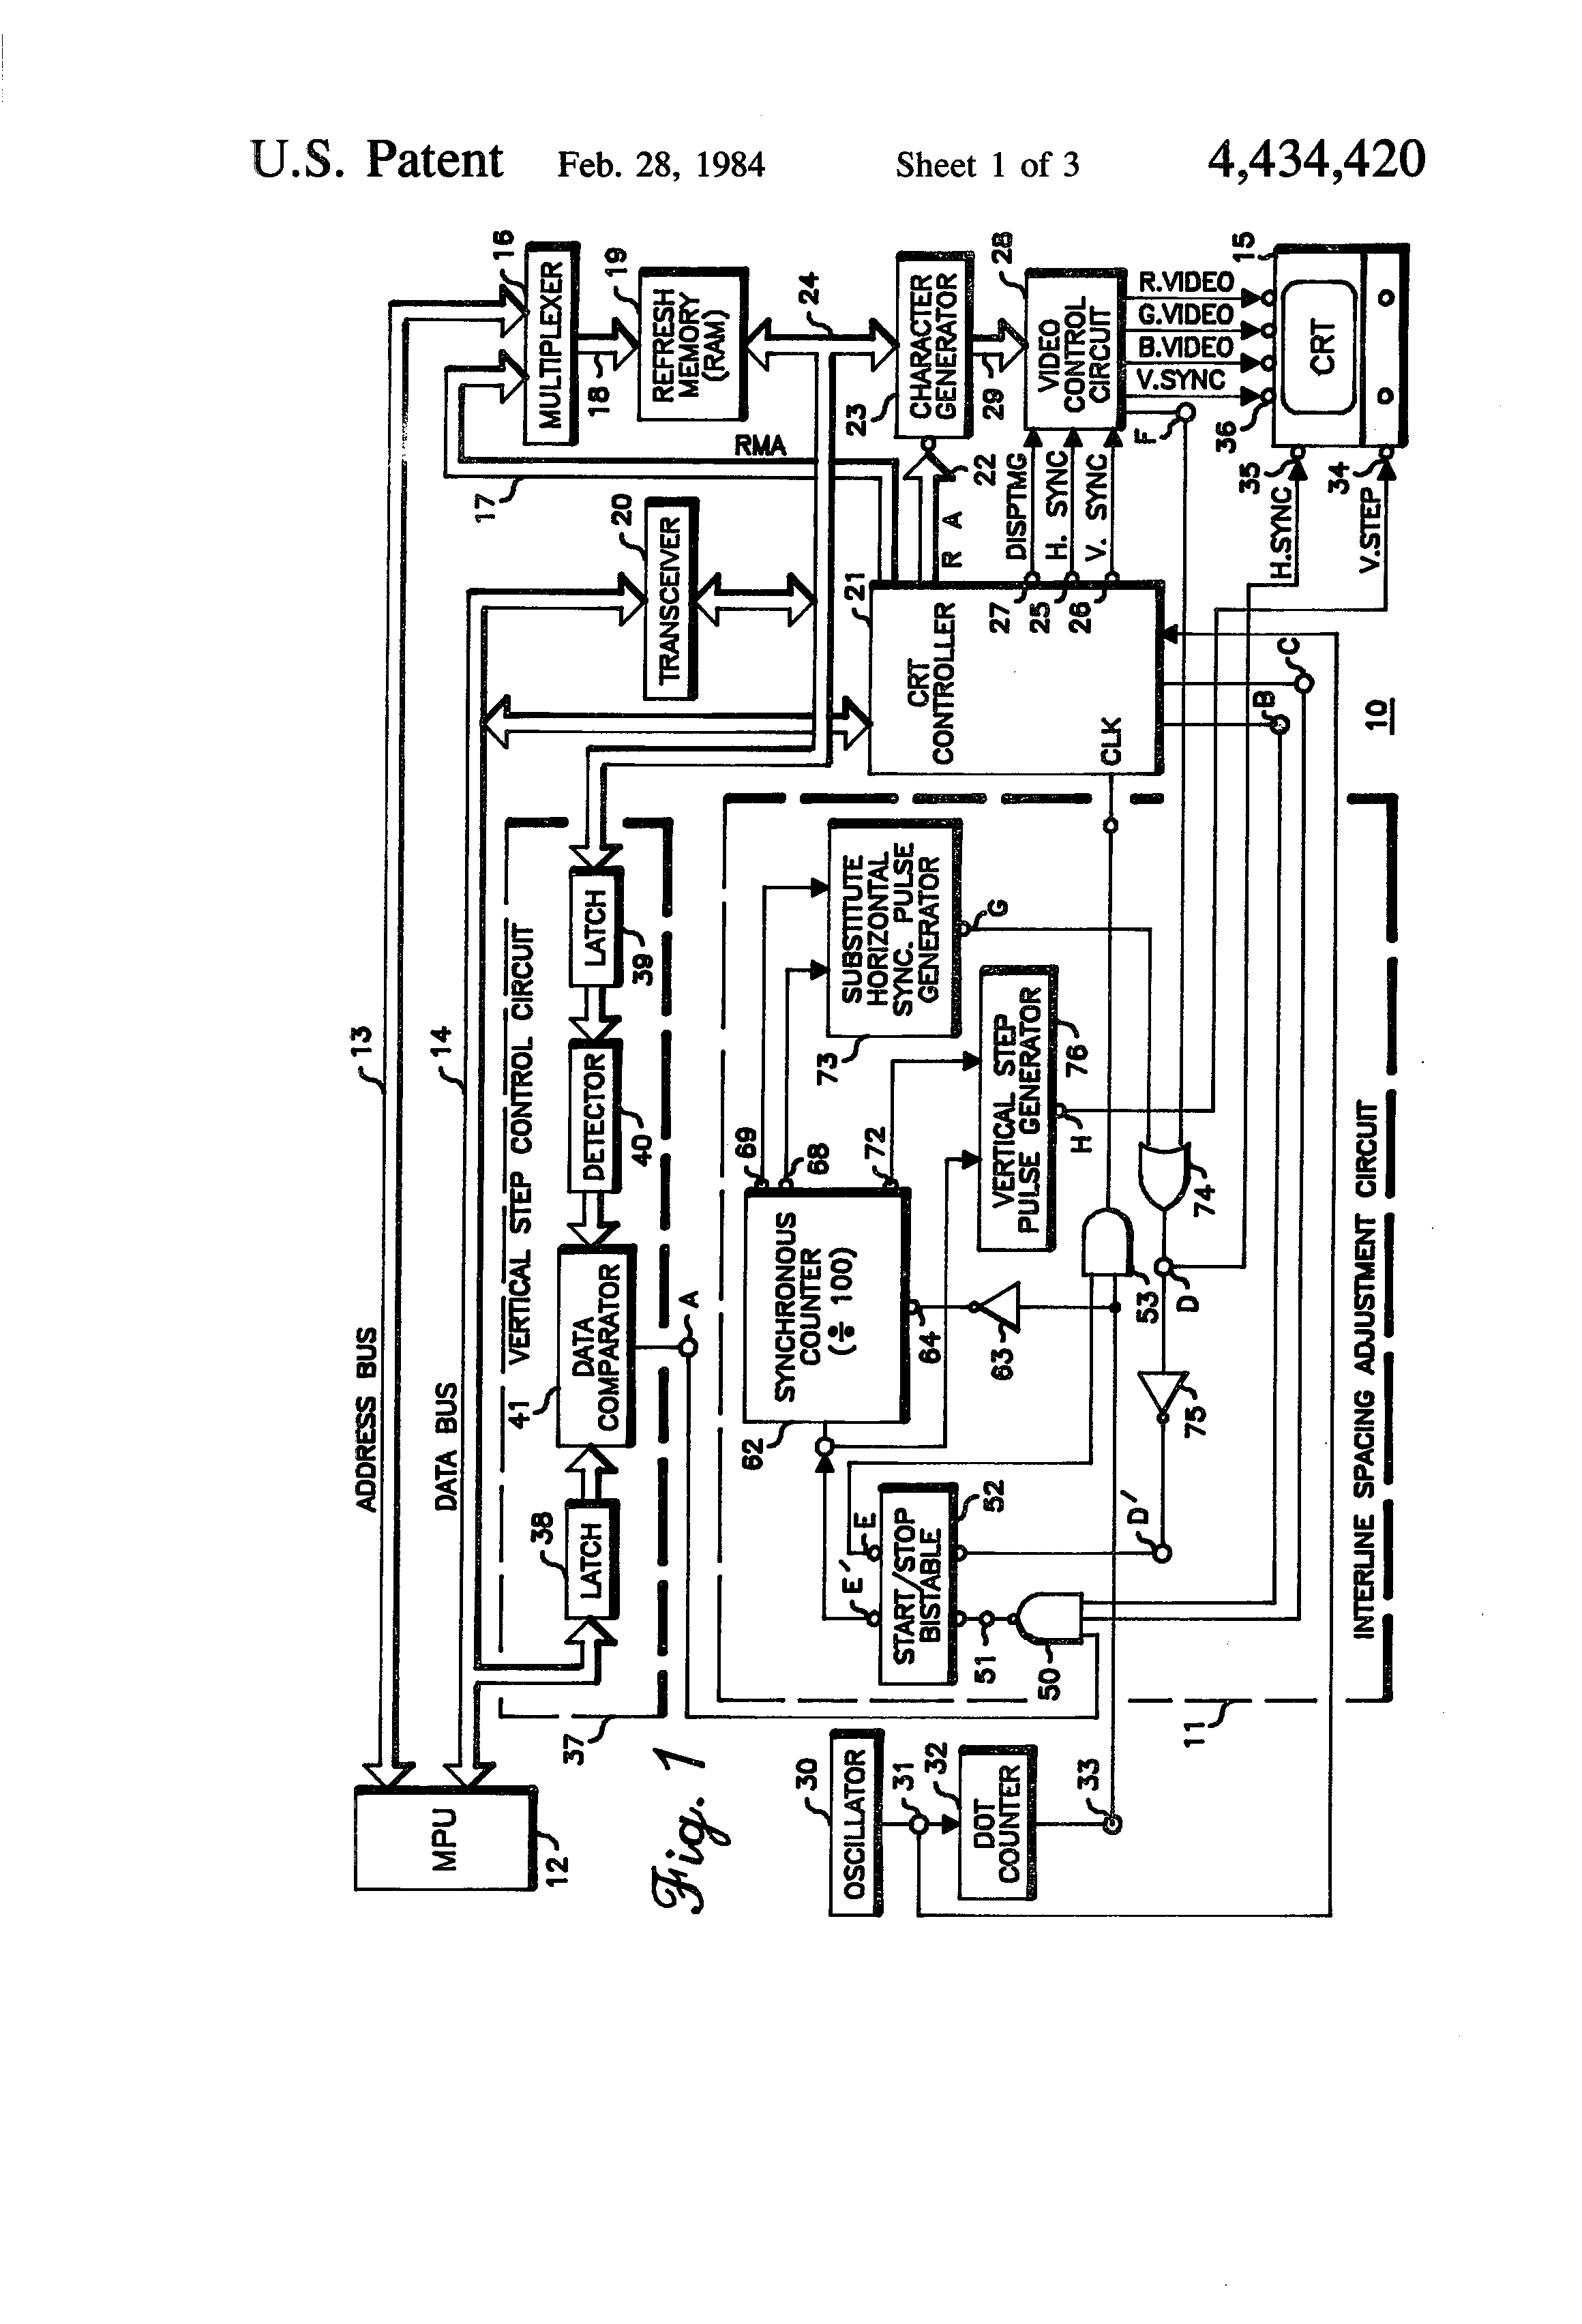 Crt Screen Schematic Electrical Wiring Diagram Patent Us4434420 Interline Spacing Adjustment Circuit In A Led